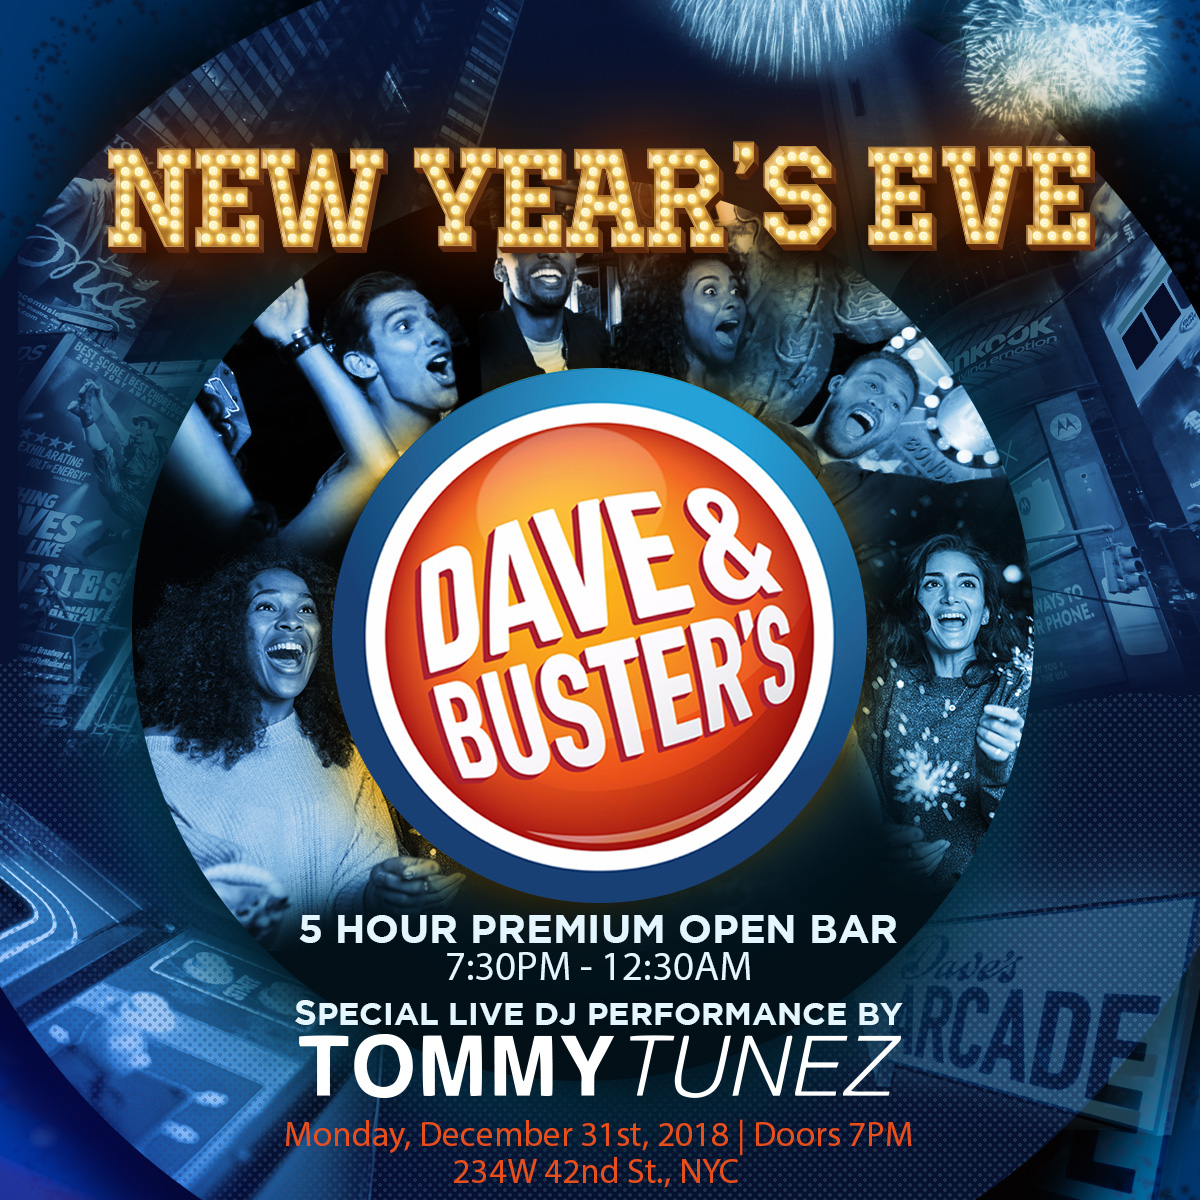 Dave Amp Buster S Vip Nye Party Buy Tickets Now